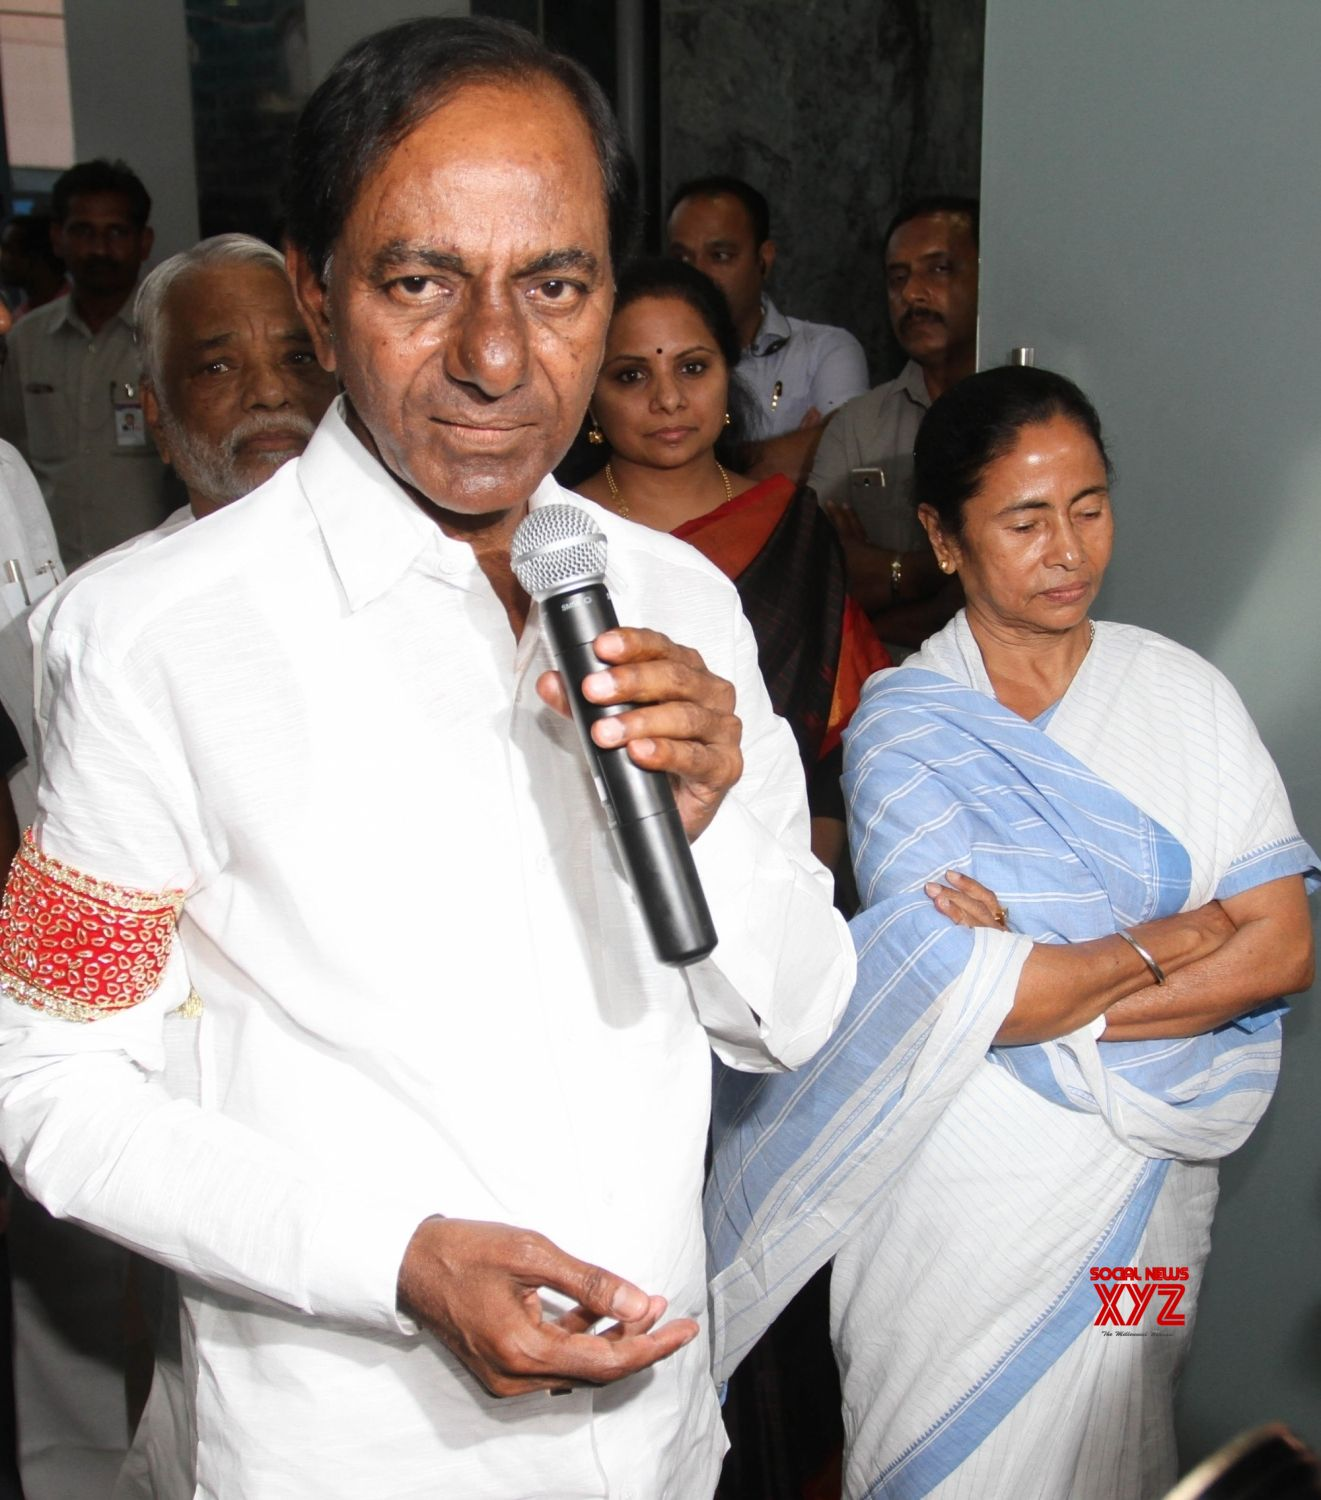 Howrah: Telangana Chief Minister K Chandrasekhar Rao talks to the press in the presence of West Bengal Chief Minister Mamata Banerjee at Nabanna in Howrah on March 19, 2018. (Photo: IANS)